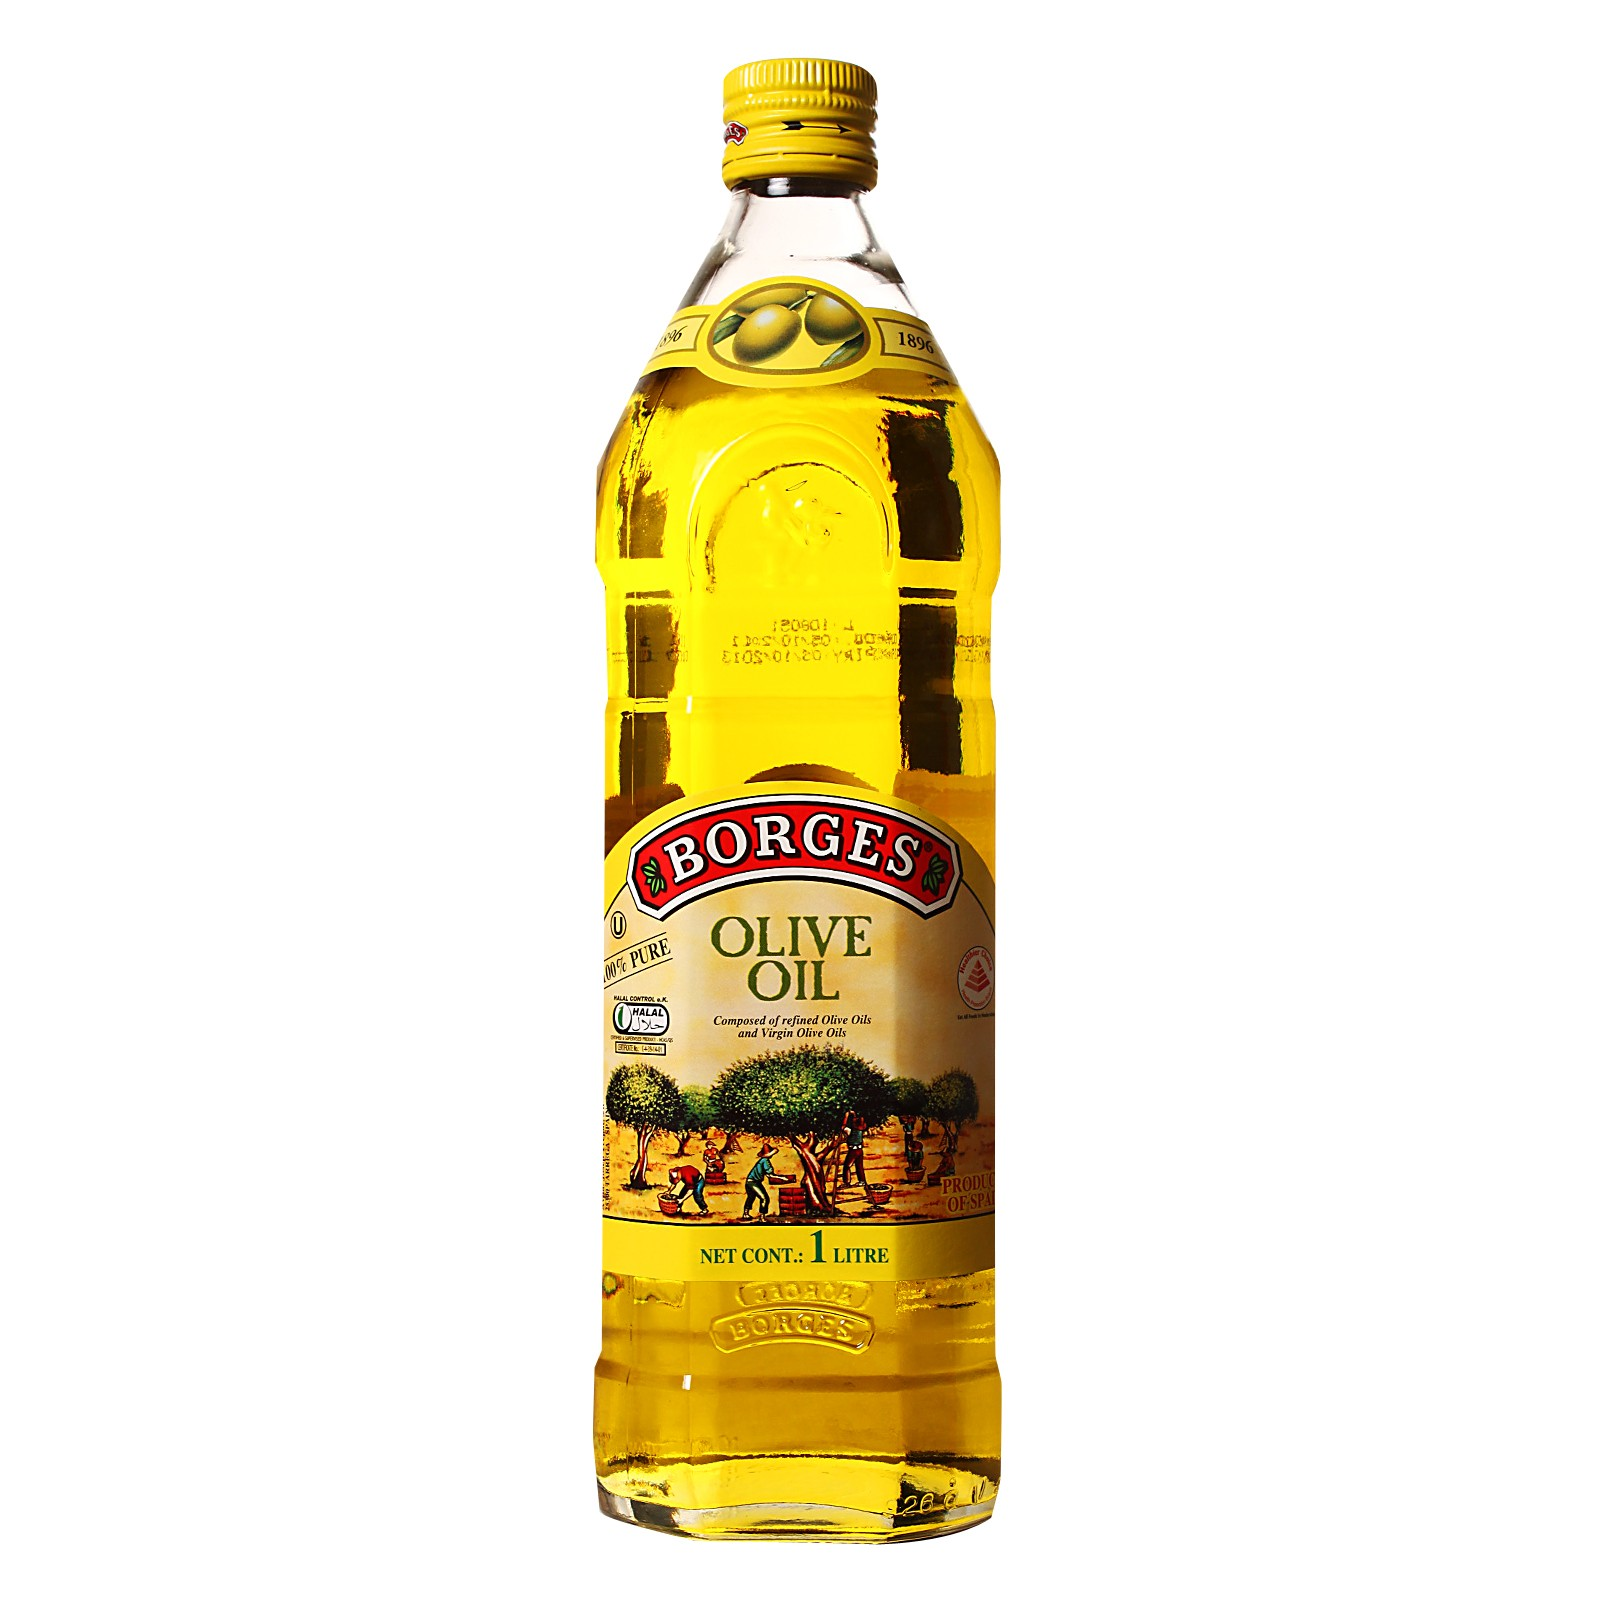 Borges Olive Oil - Borges Olive Oil